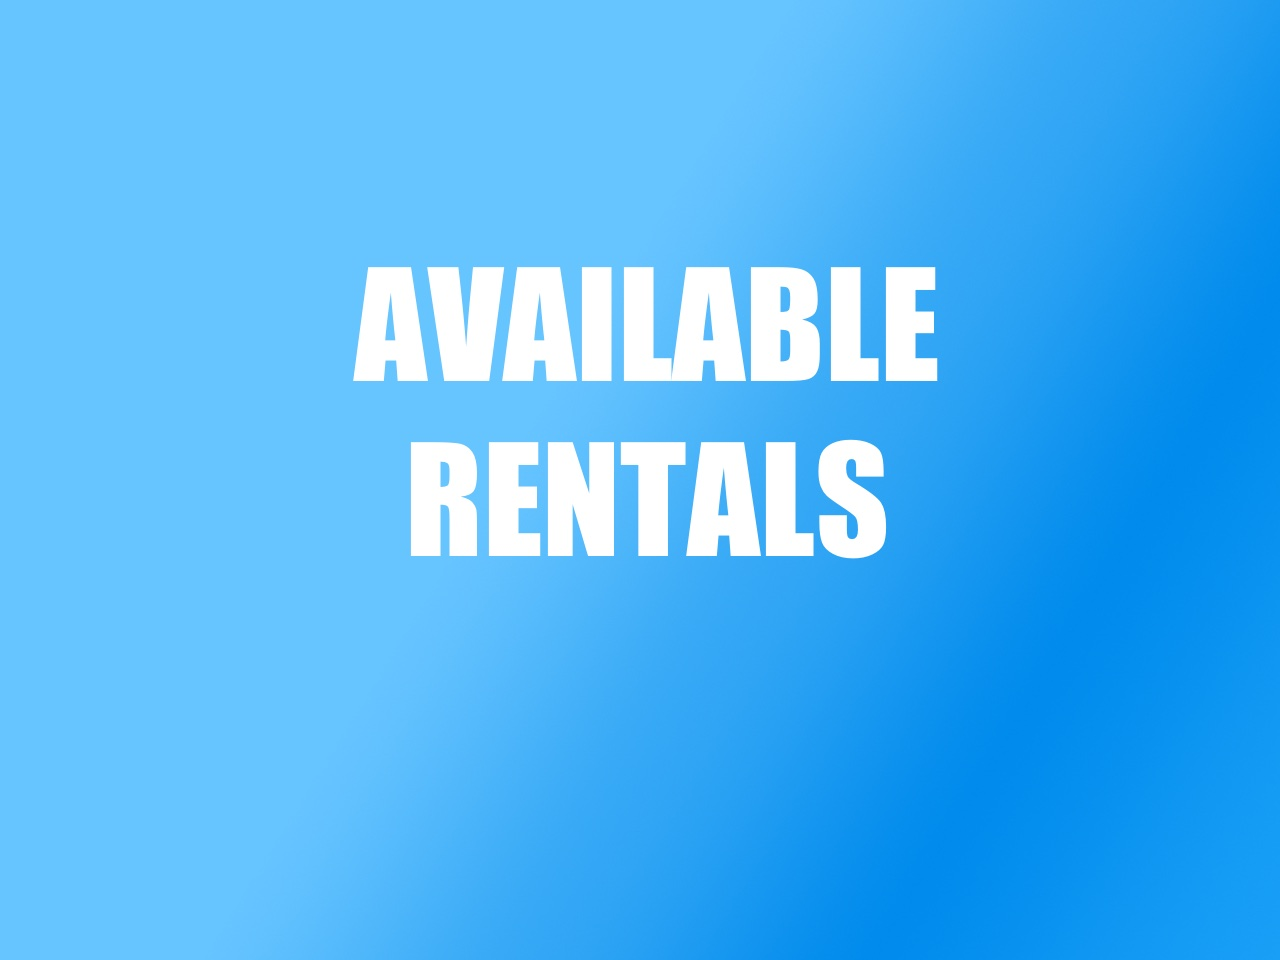 AVAILABLE.RENTALS